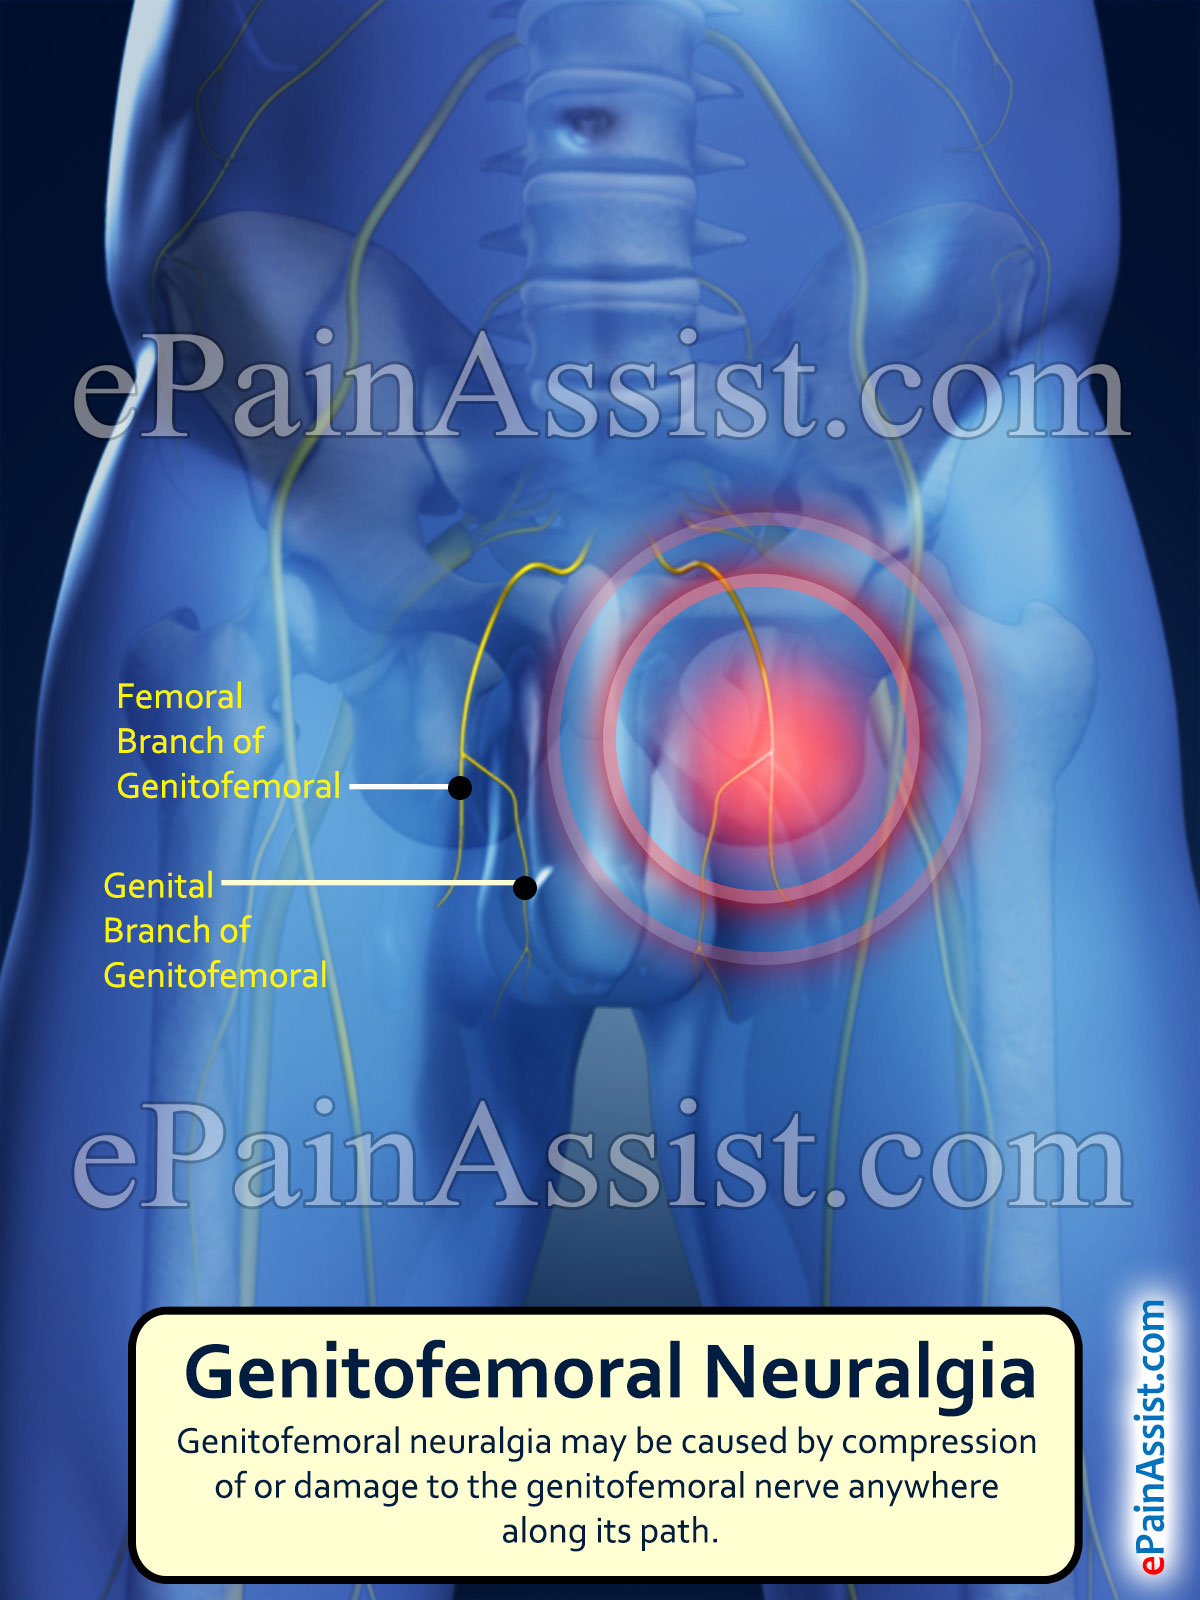 genitofemoral neuralgia: treatment, causes, symptoms, types, Muscles